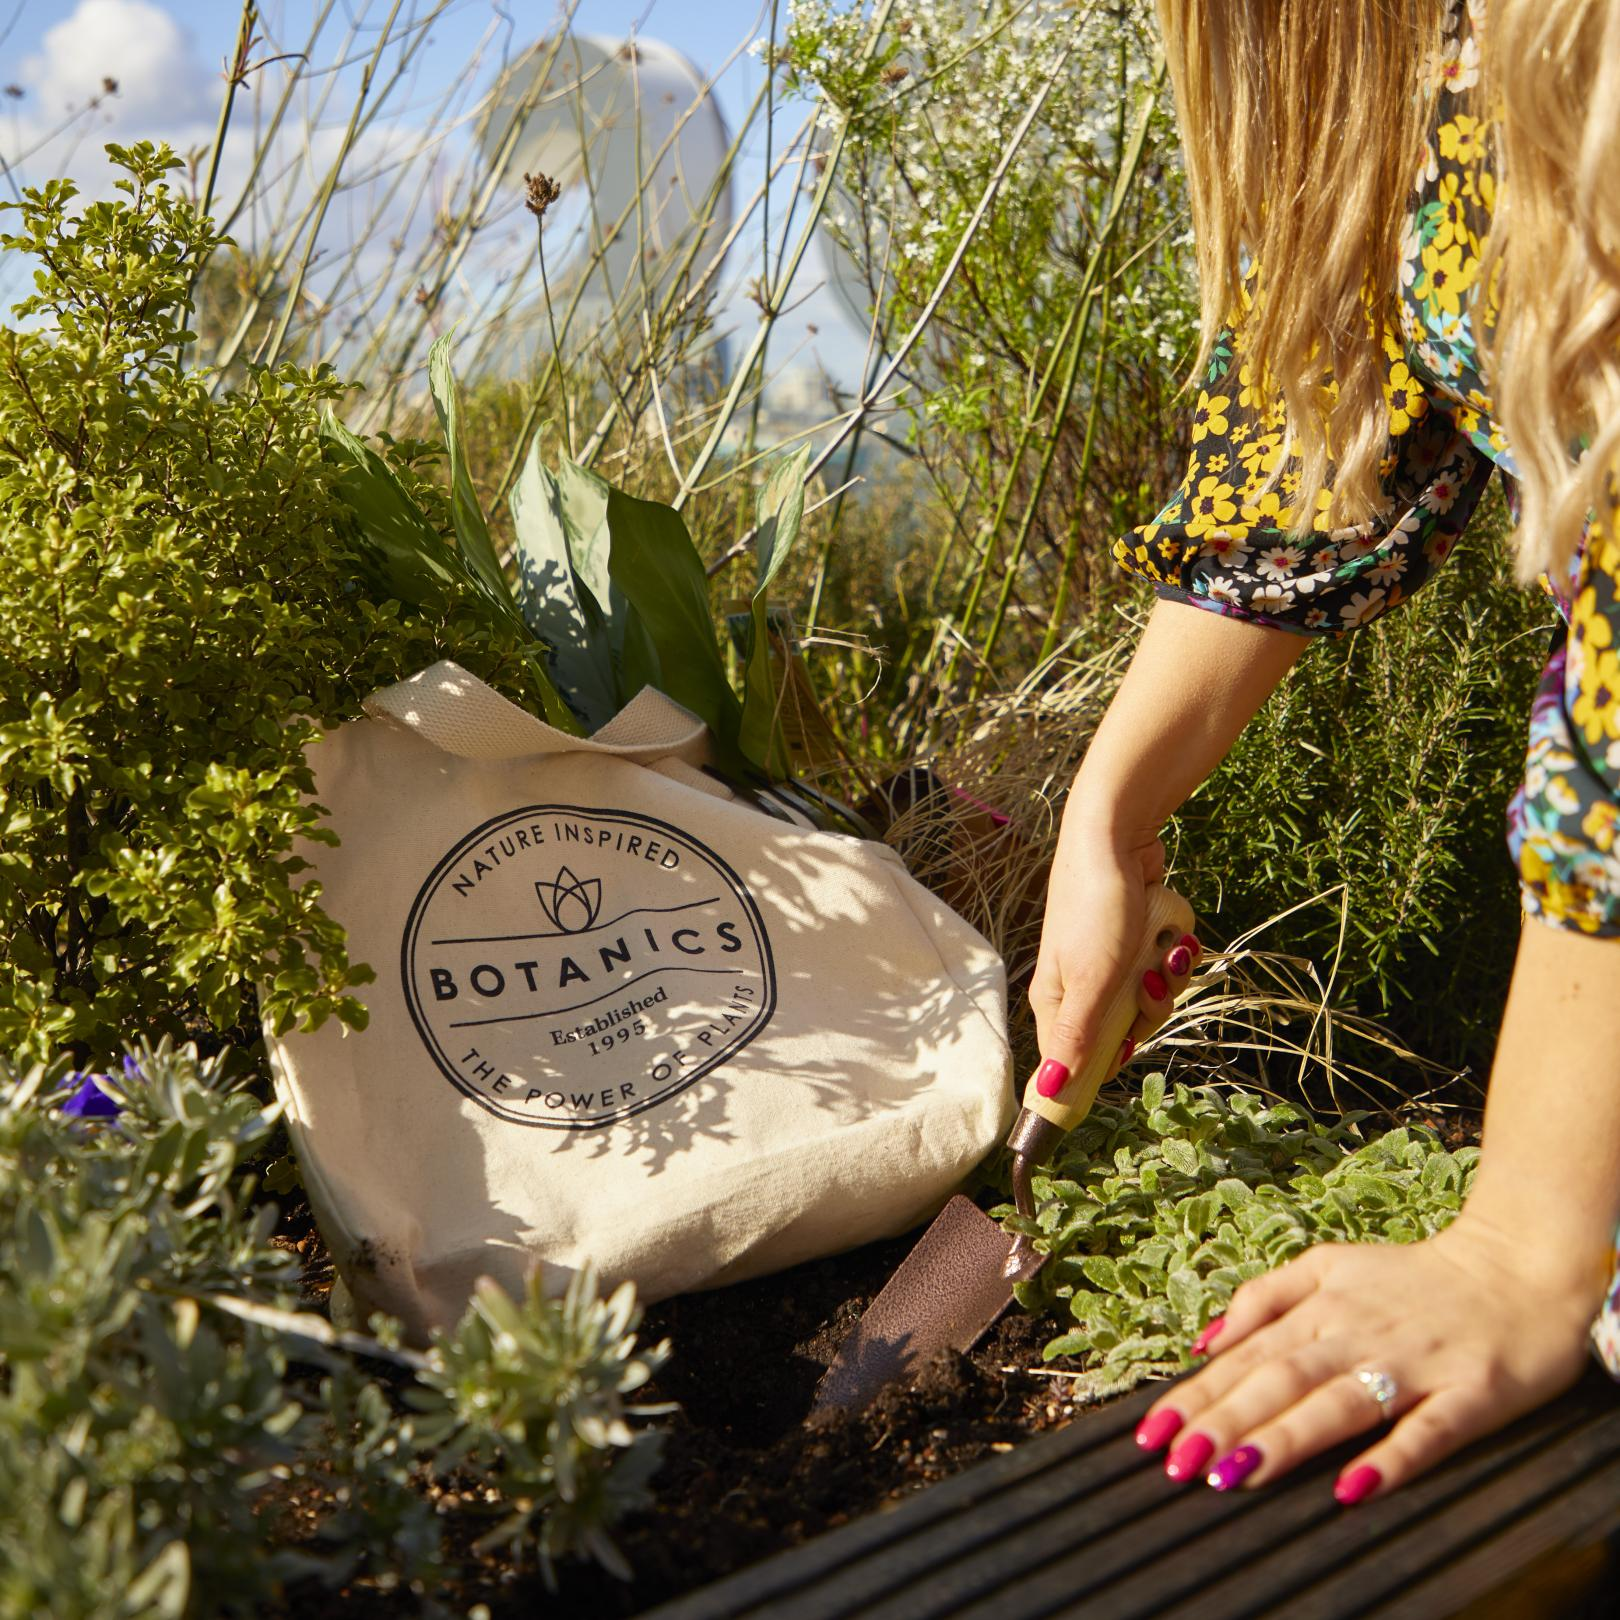 Botanics and Carbon Trust sustainable bag